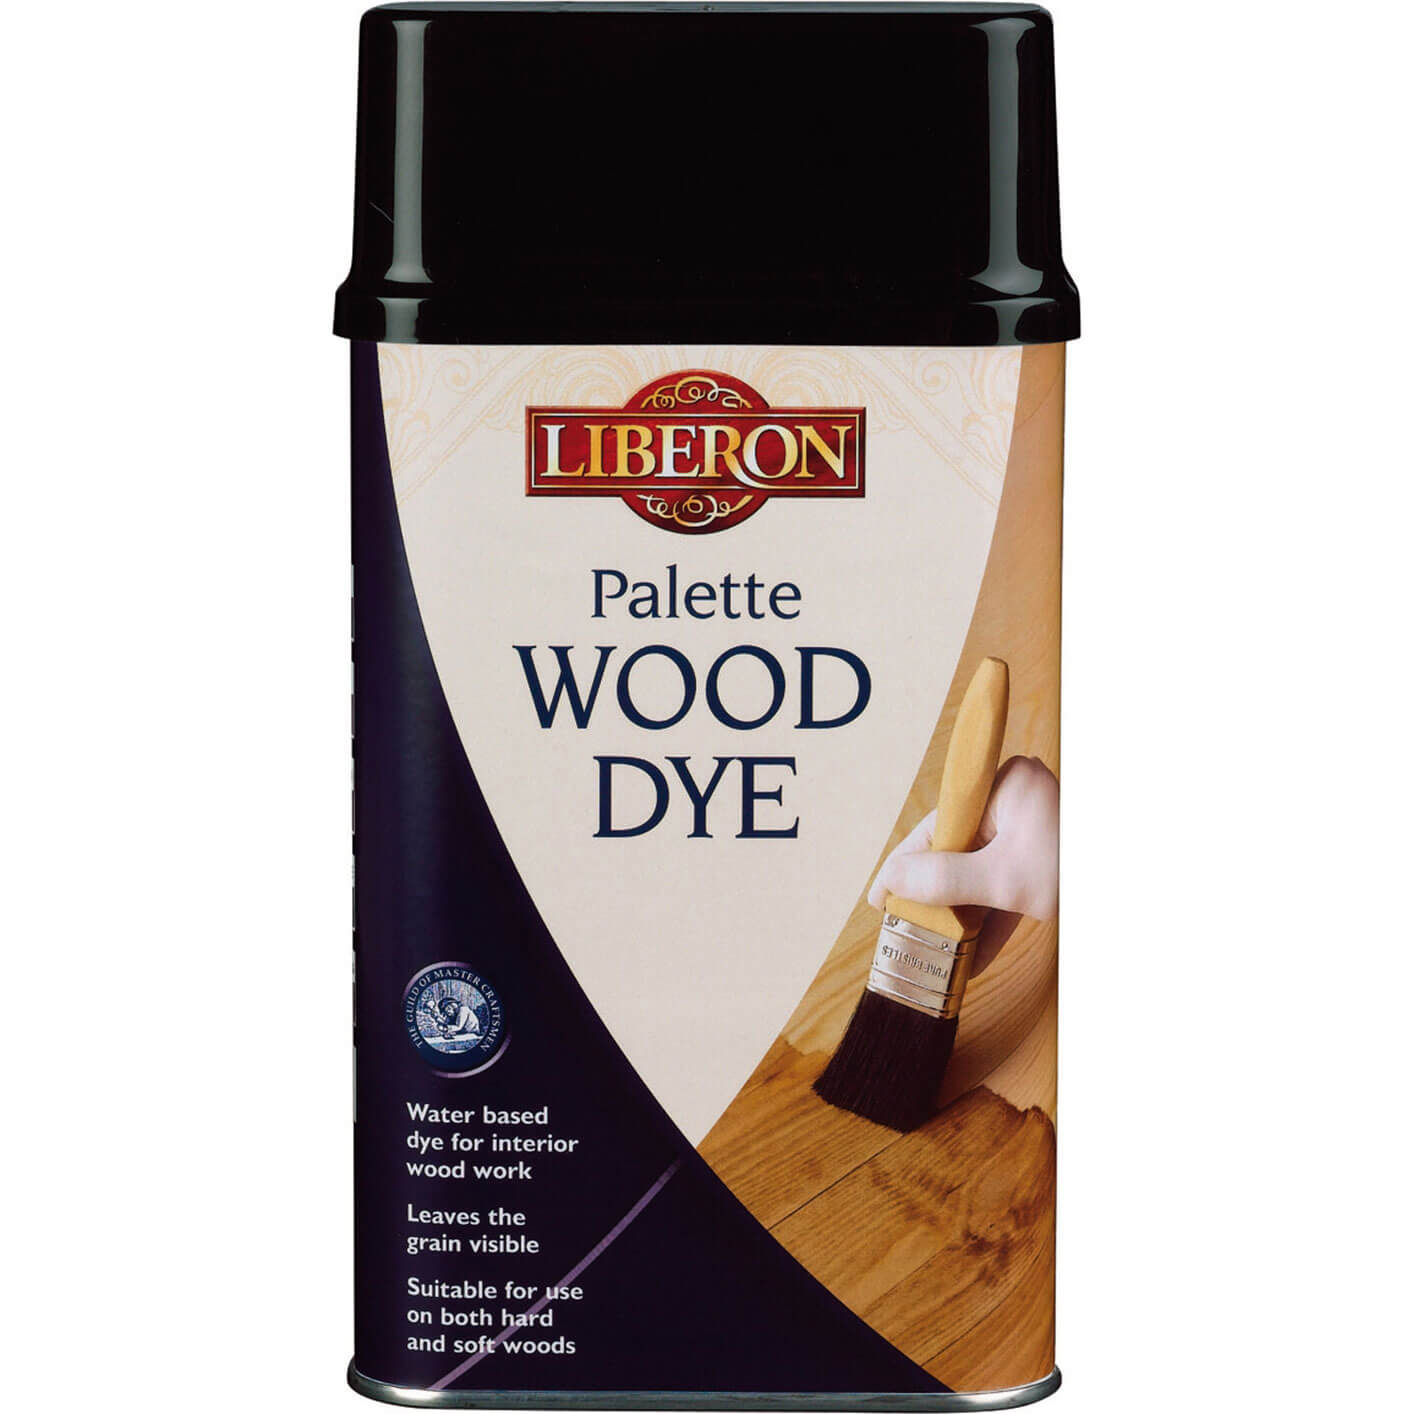 Image of Liberon Palette Wood Dye Antique Pine 5l